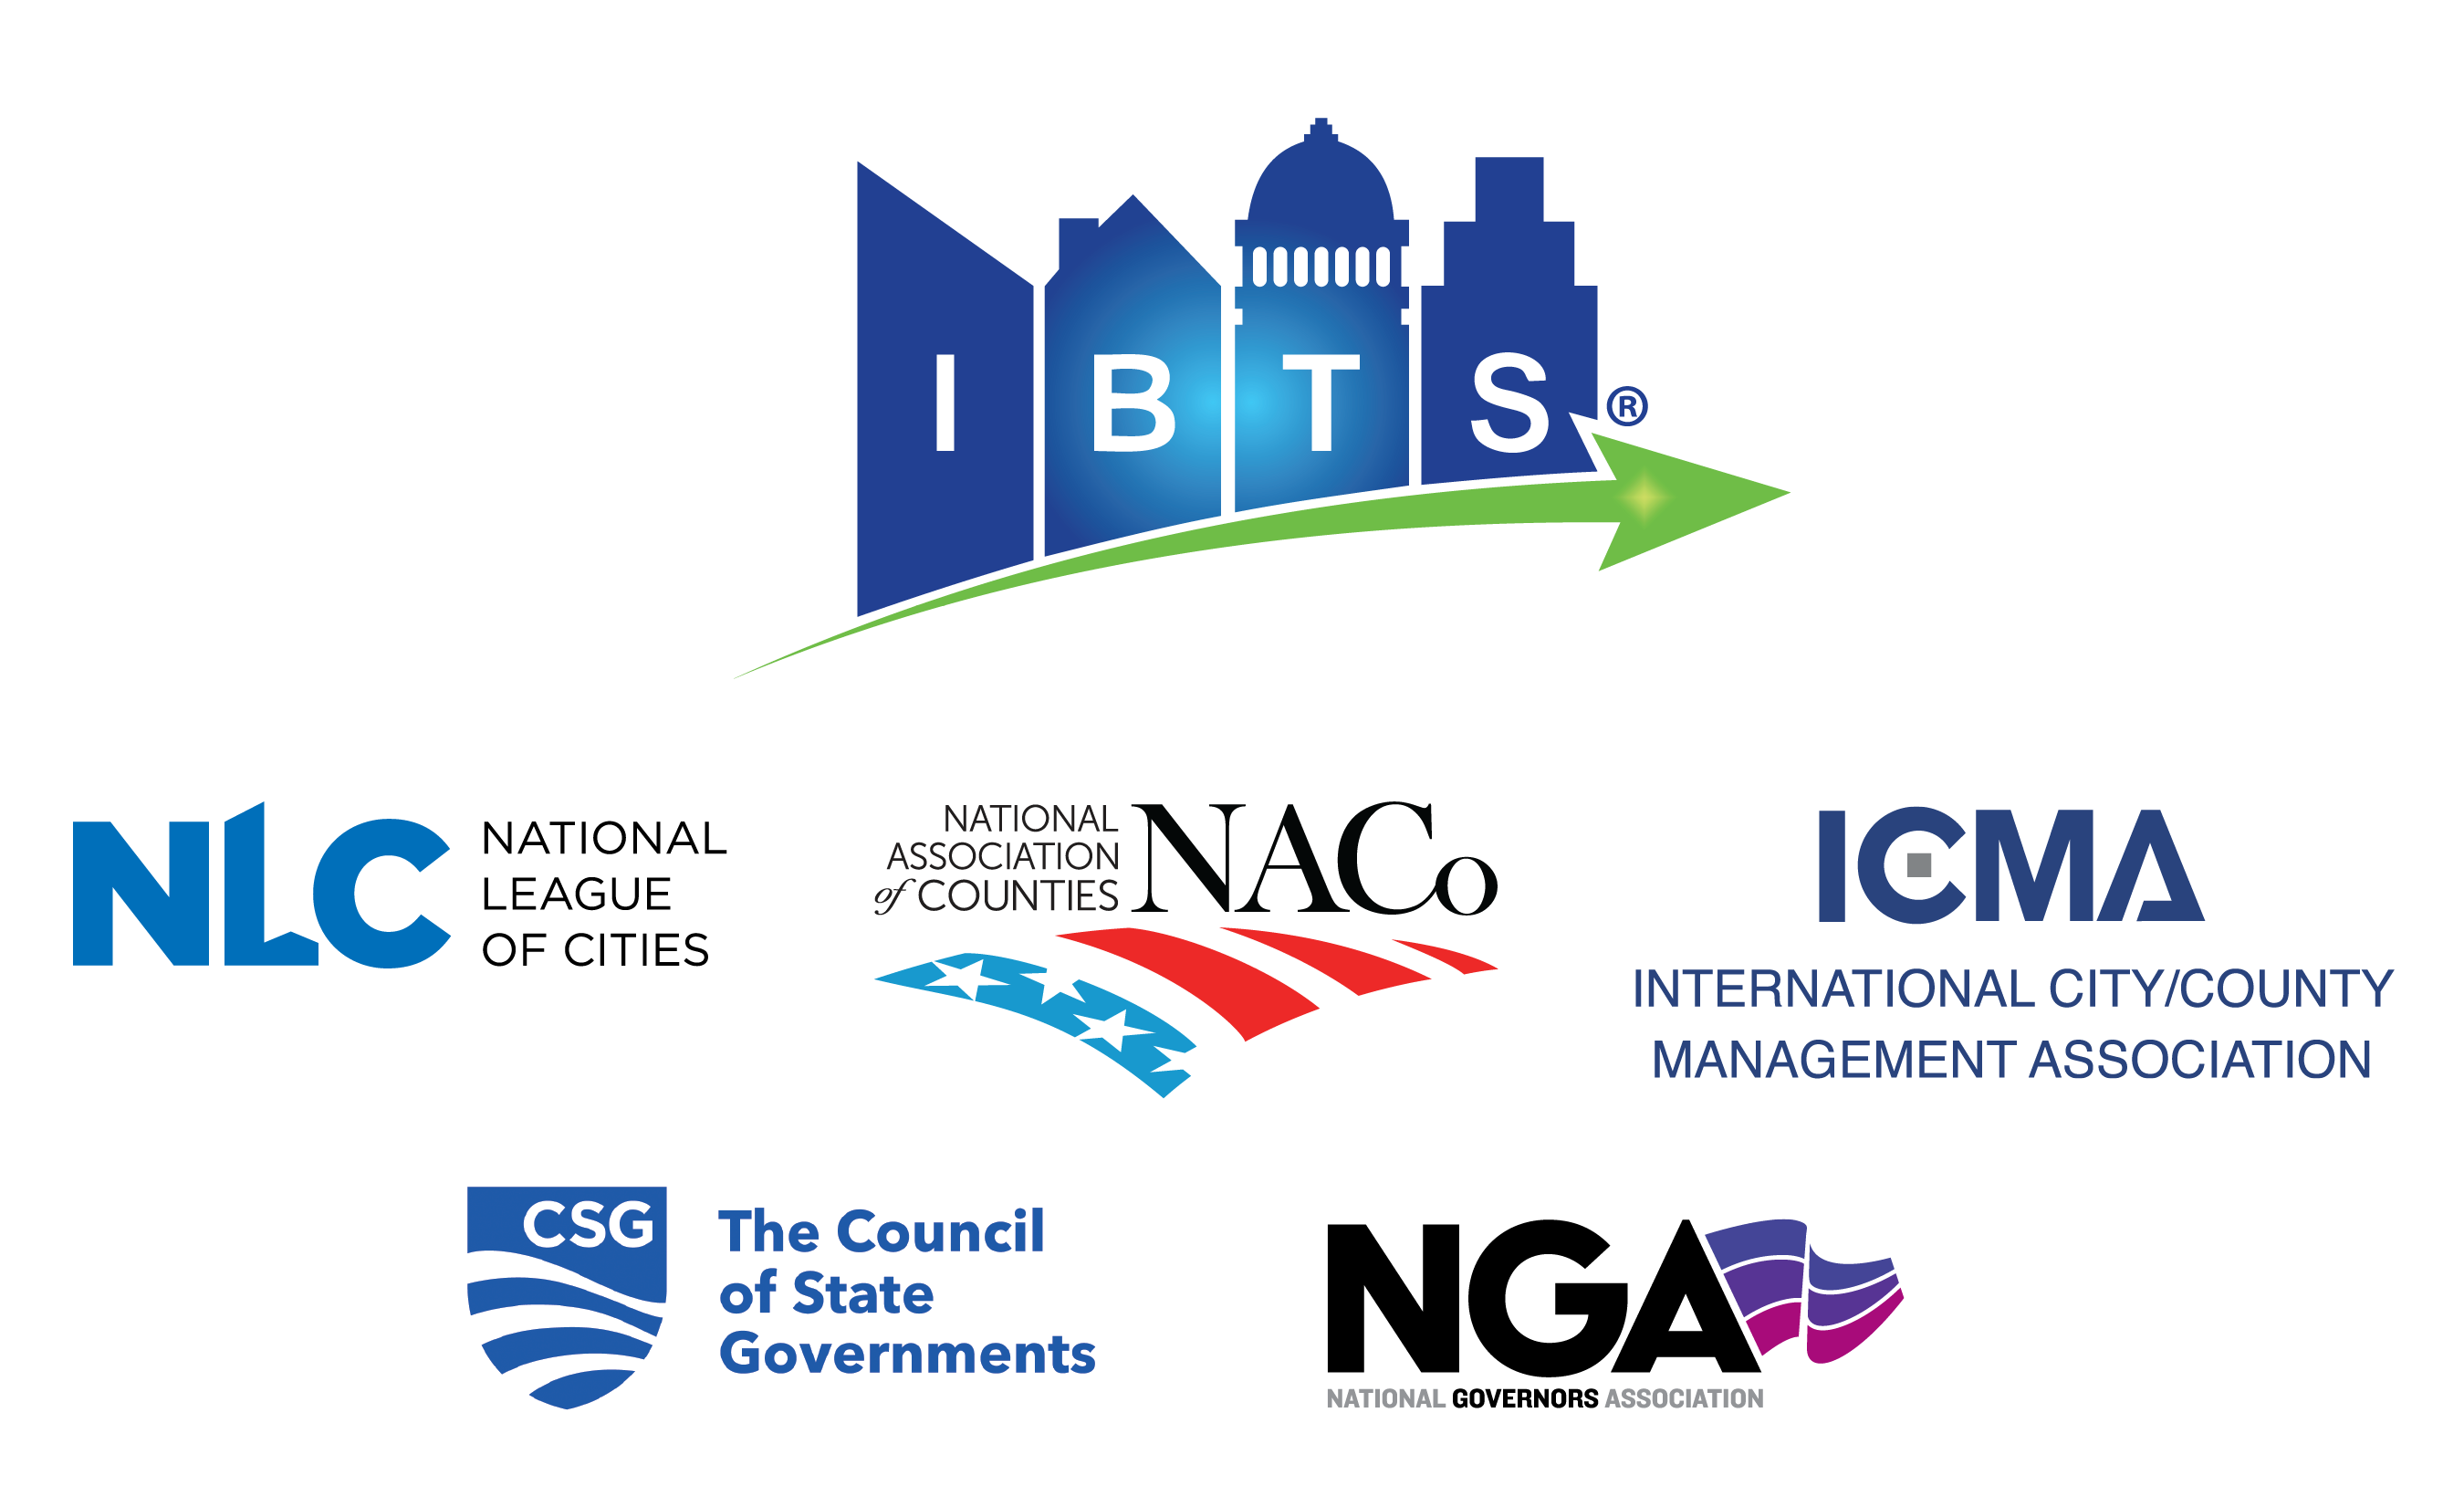 IBTS logo with its board appointing association logos arranged beneath it.